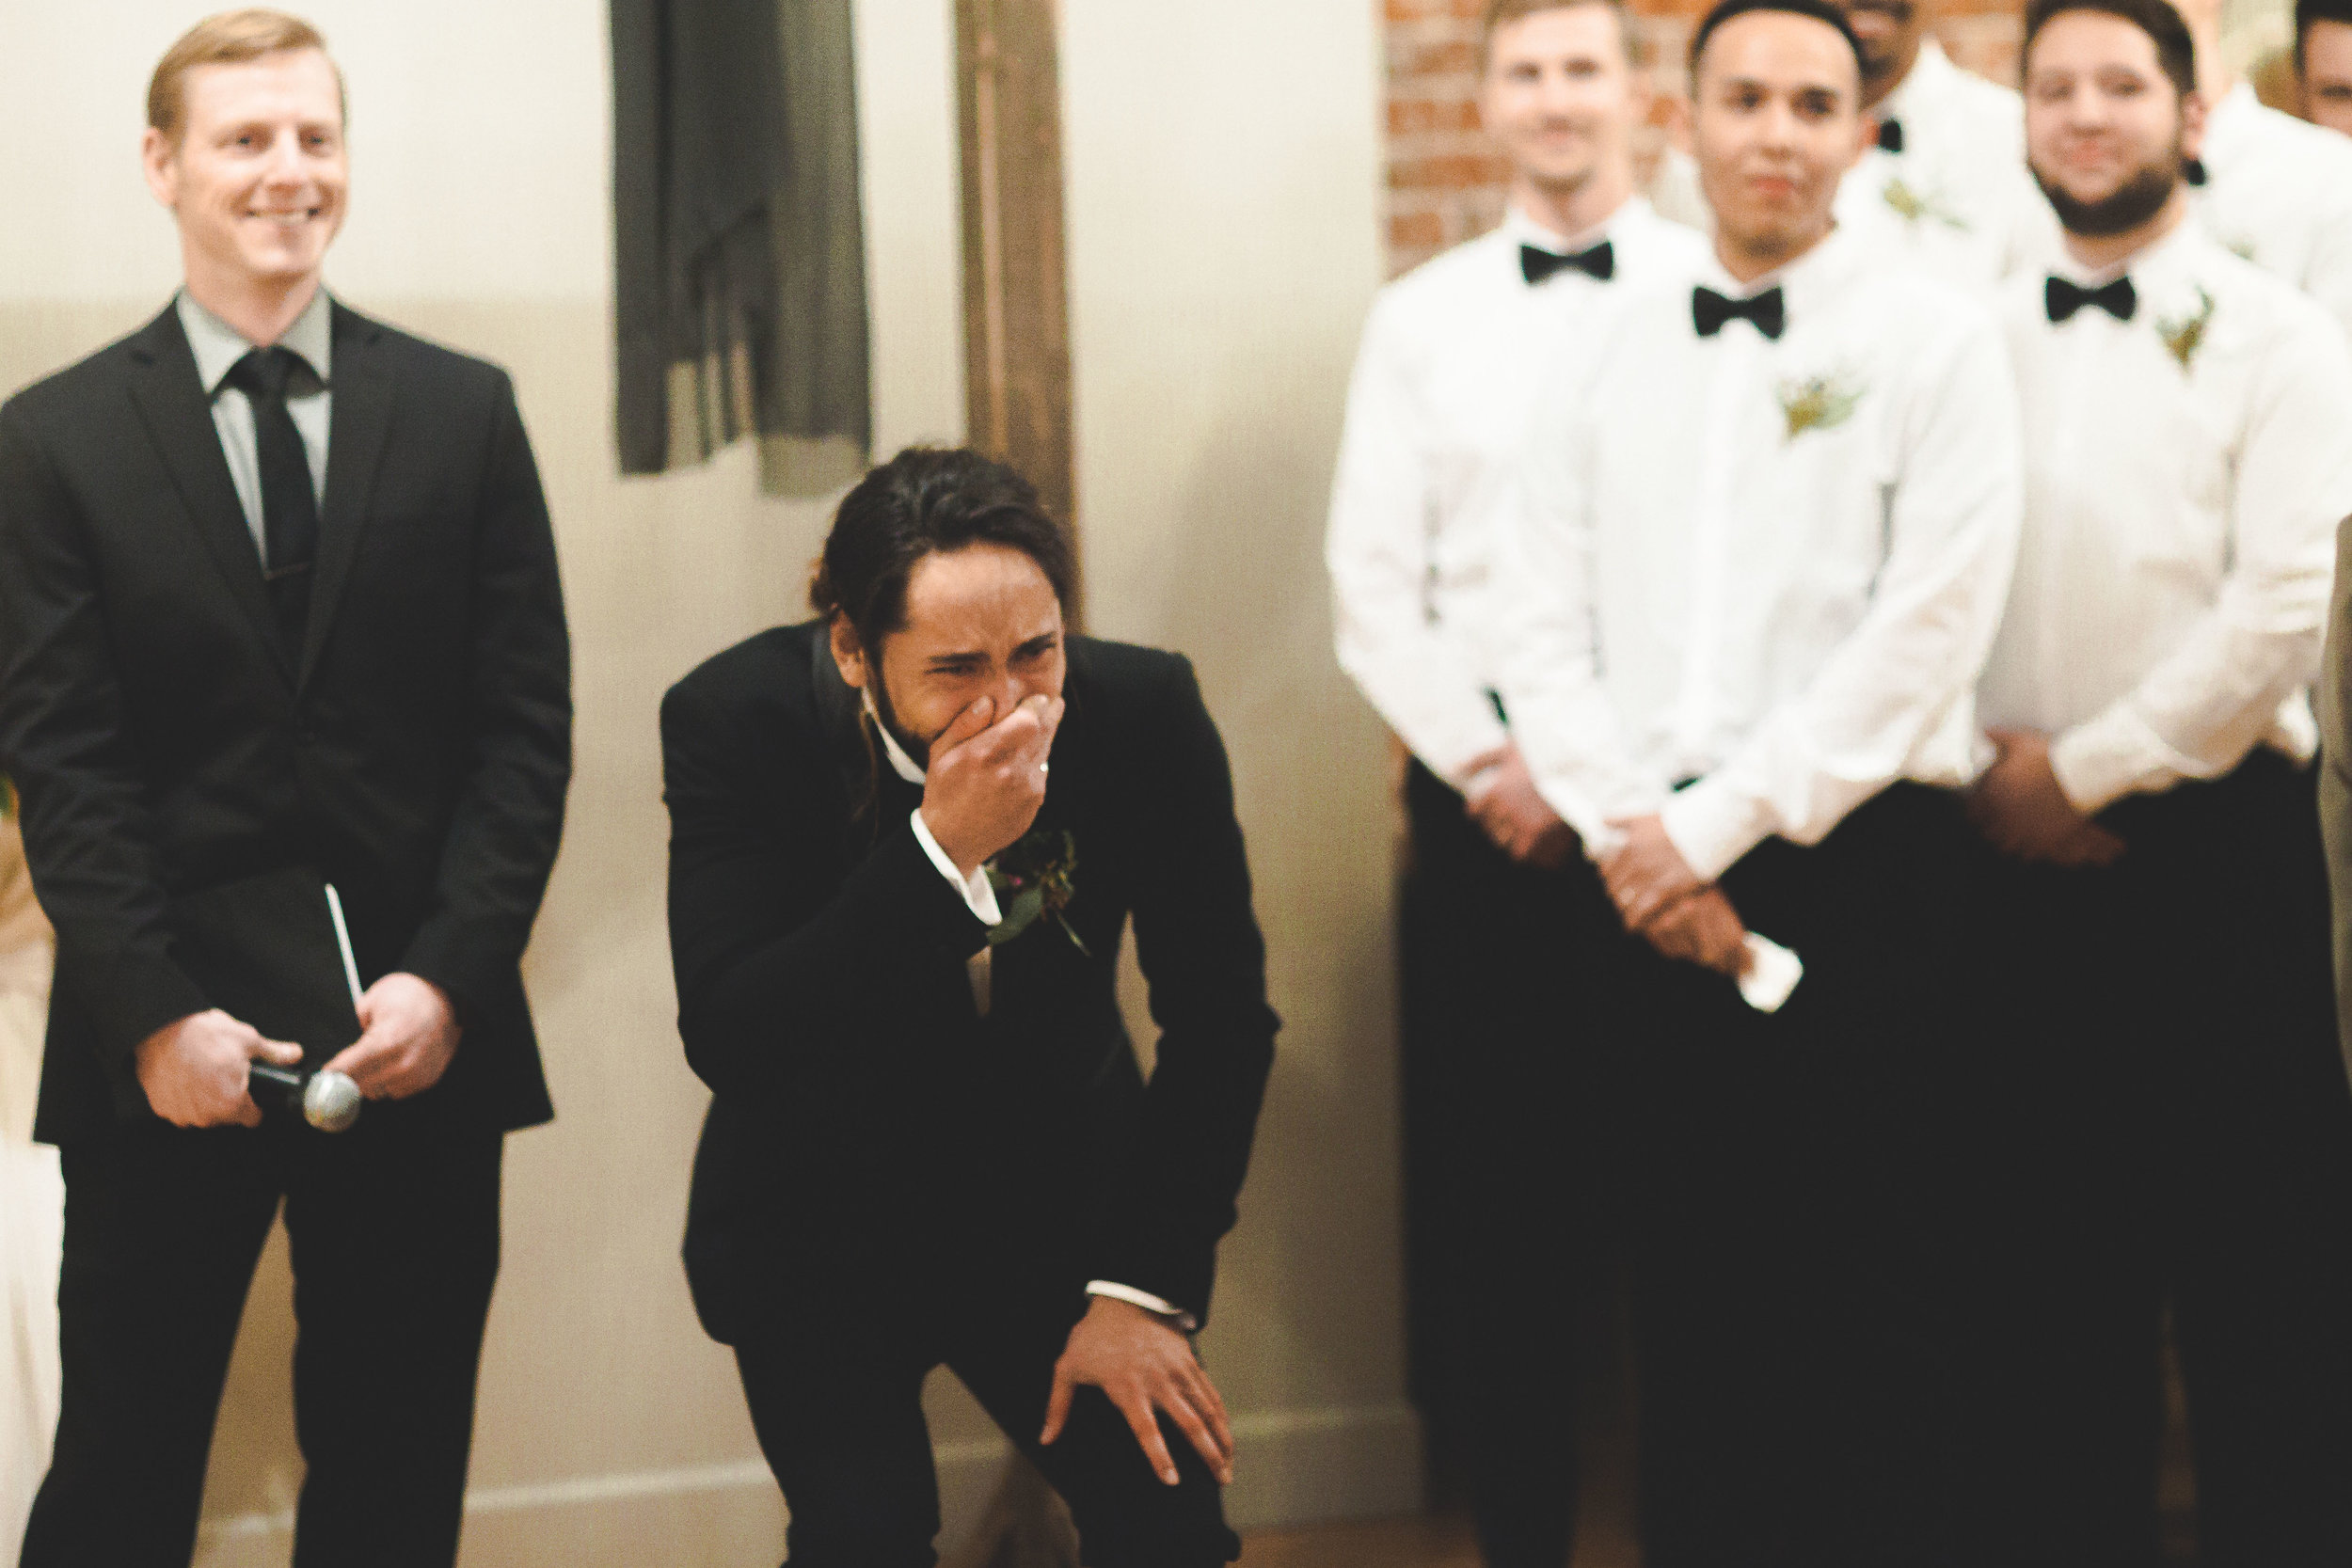 groom reacts to bride first look spokane wedding